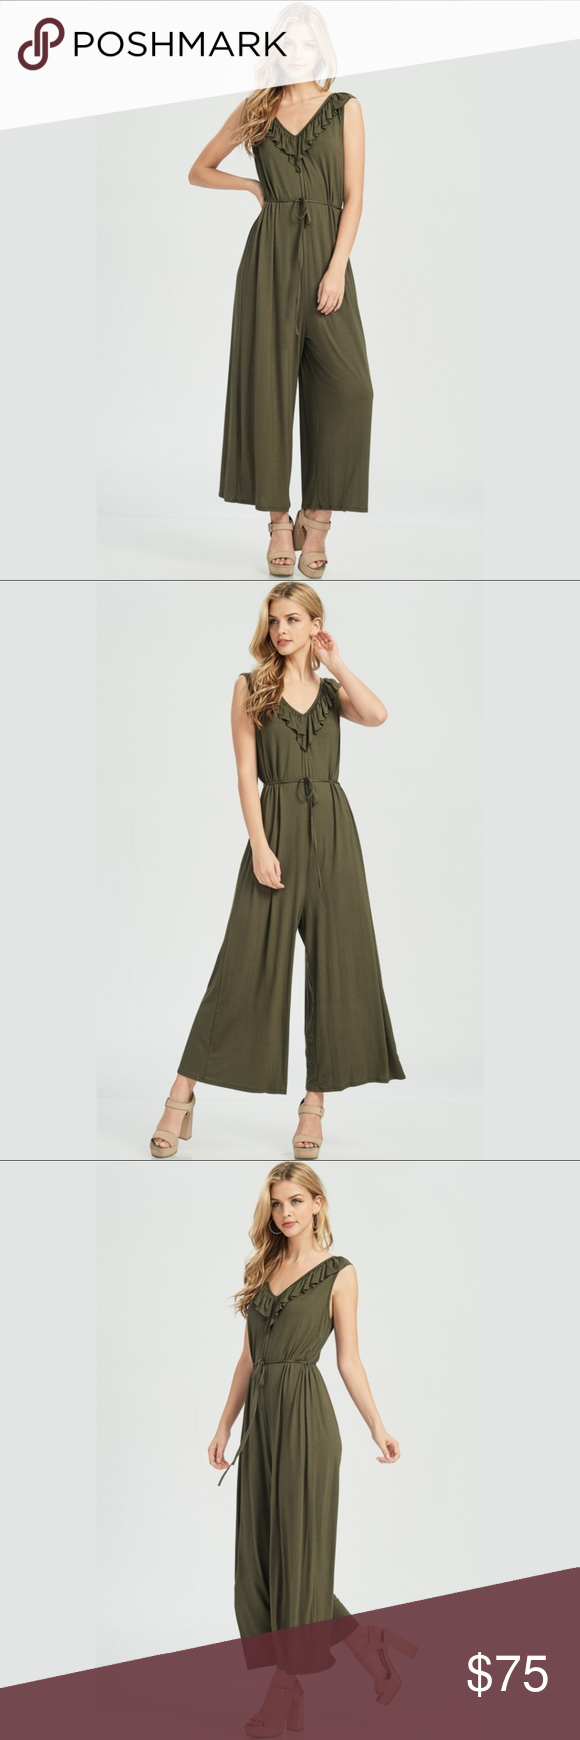 7448167575e5 Ruffle Cross Back Jumpsuit - Olive  blushonme at Poshmark Featuring a super  soft and very